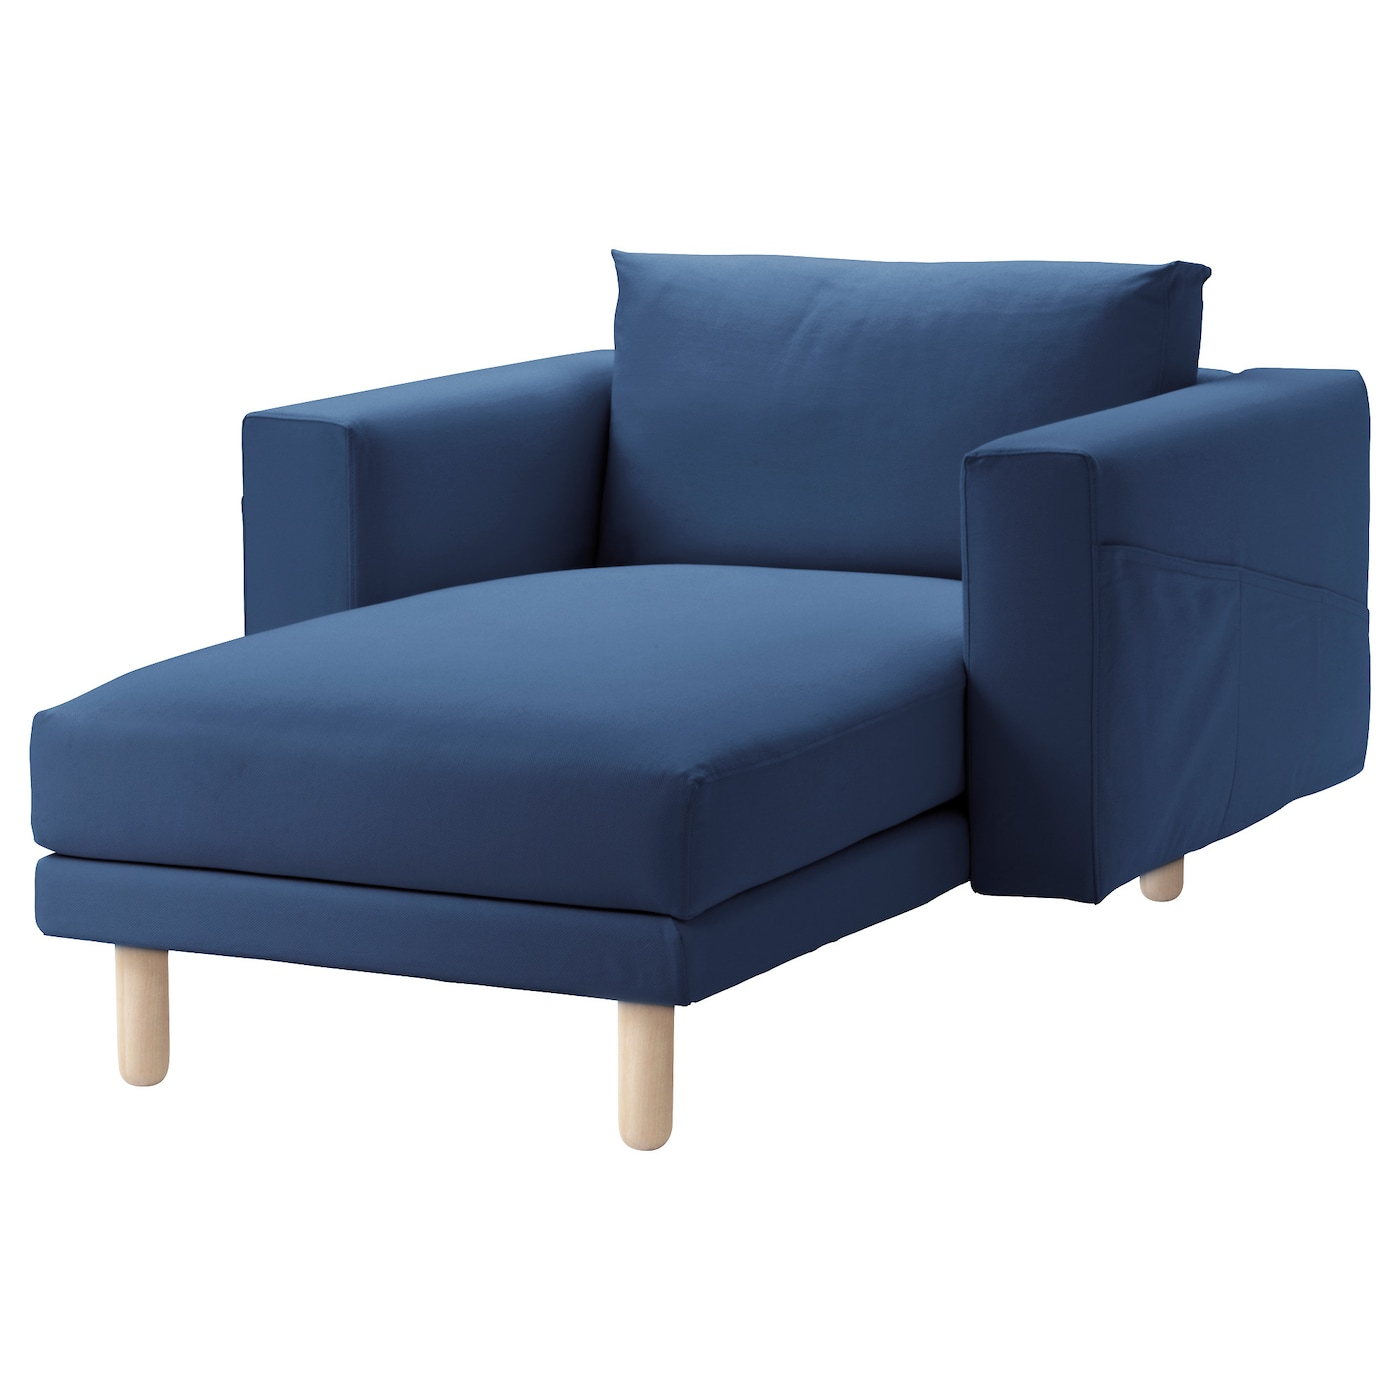 Norsborg chaise longue gr sbo dark blue birch ikea for Blue chaise longue